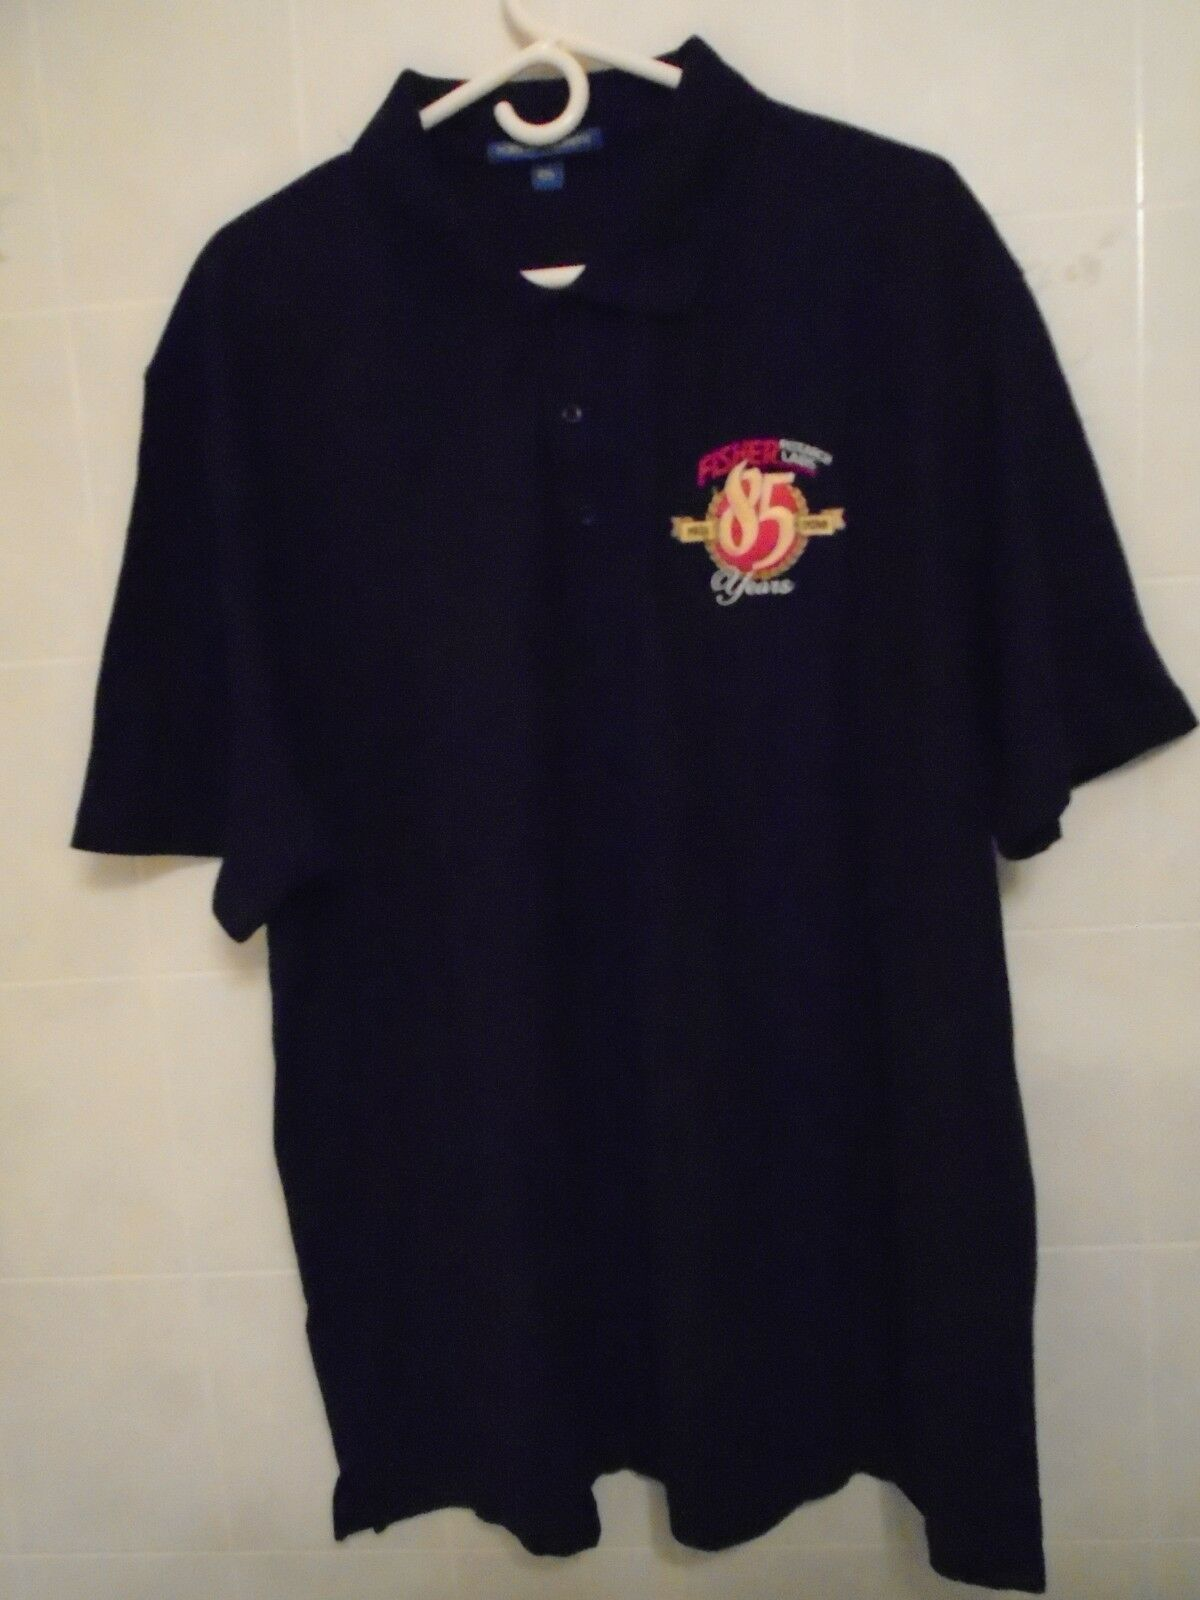 FISHER RESEARCH LAB 85 YEARS POLO SHIRT  SIZE 2 XL NEW